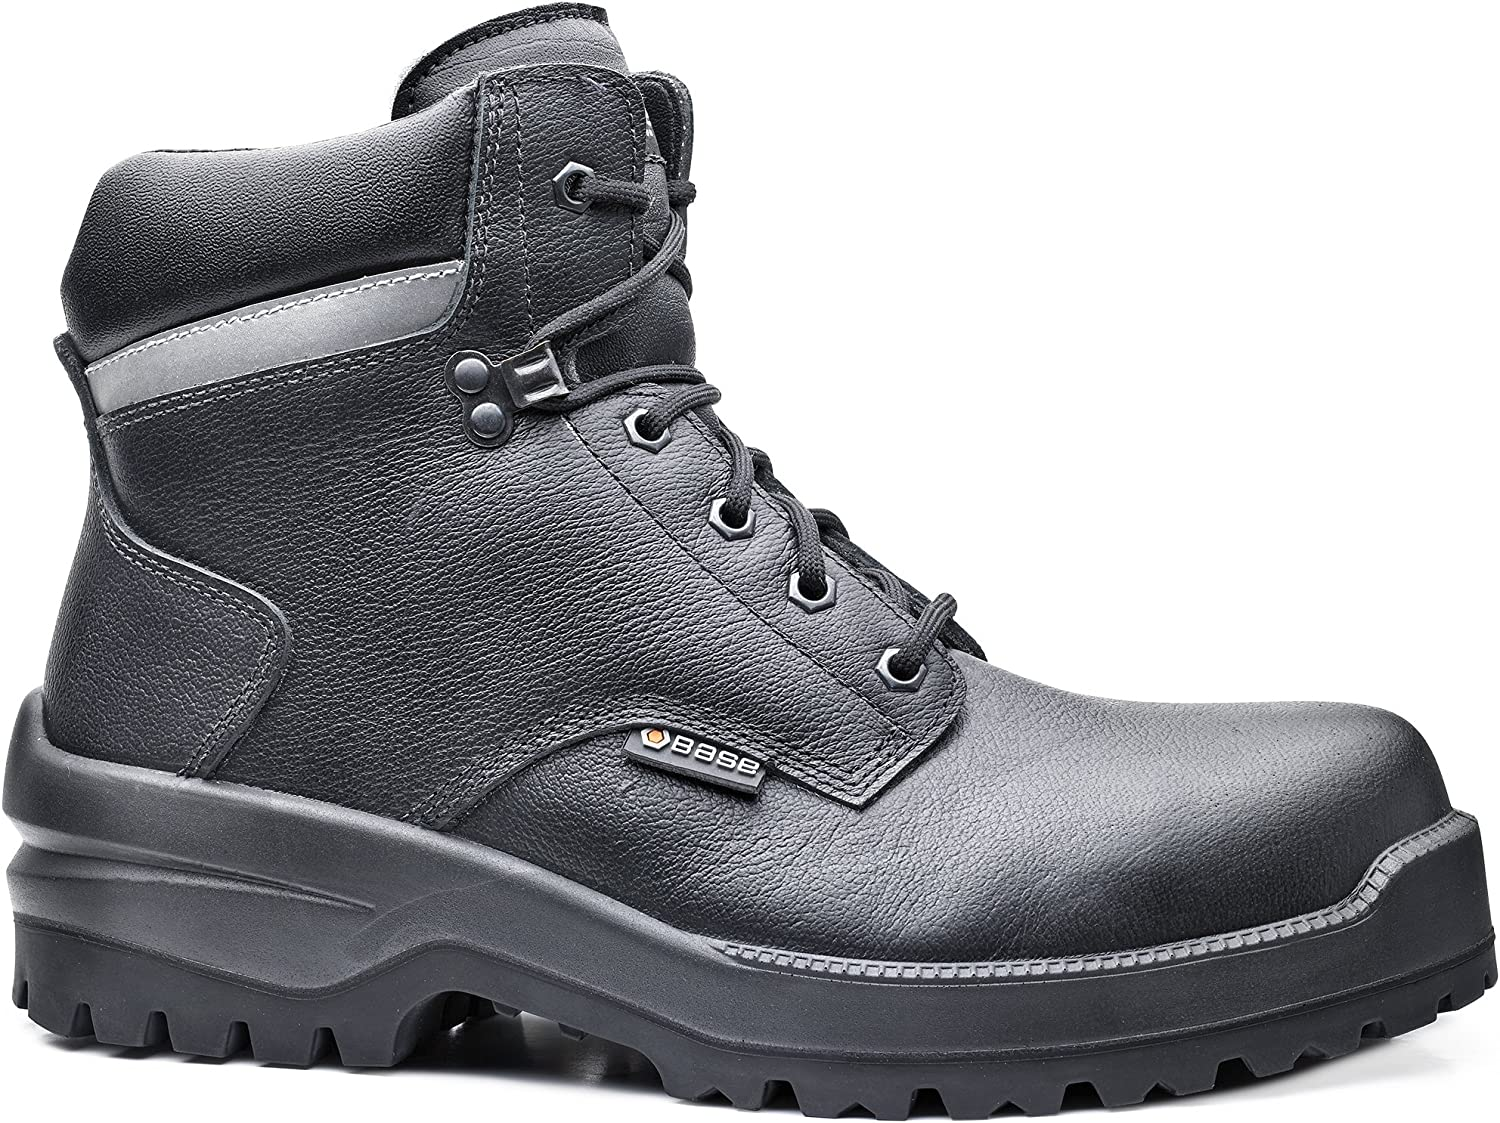 Base BO727 Rhino S3 C1 SRC Mens Platinum Nonslip Laced Safety Boot